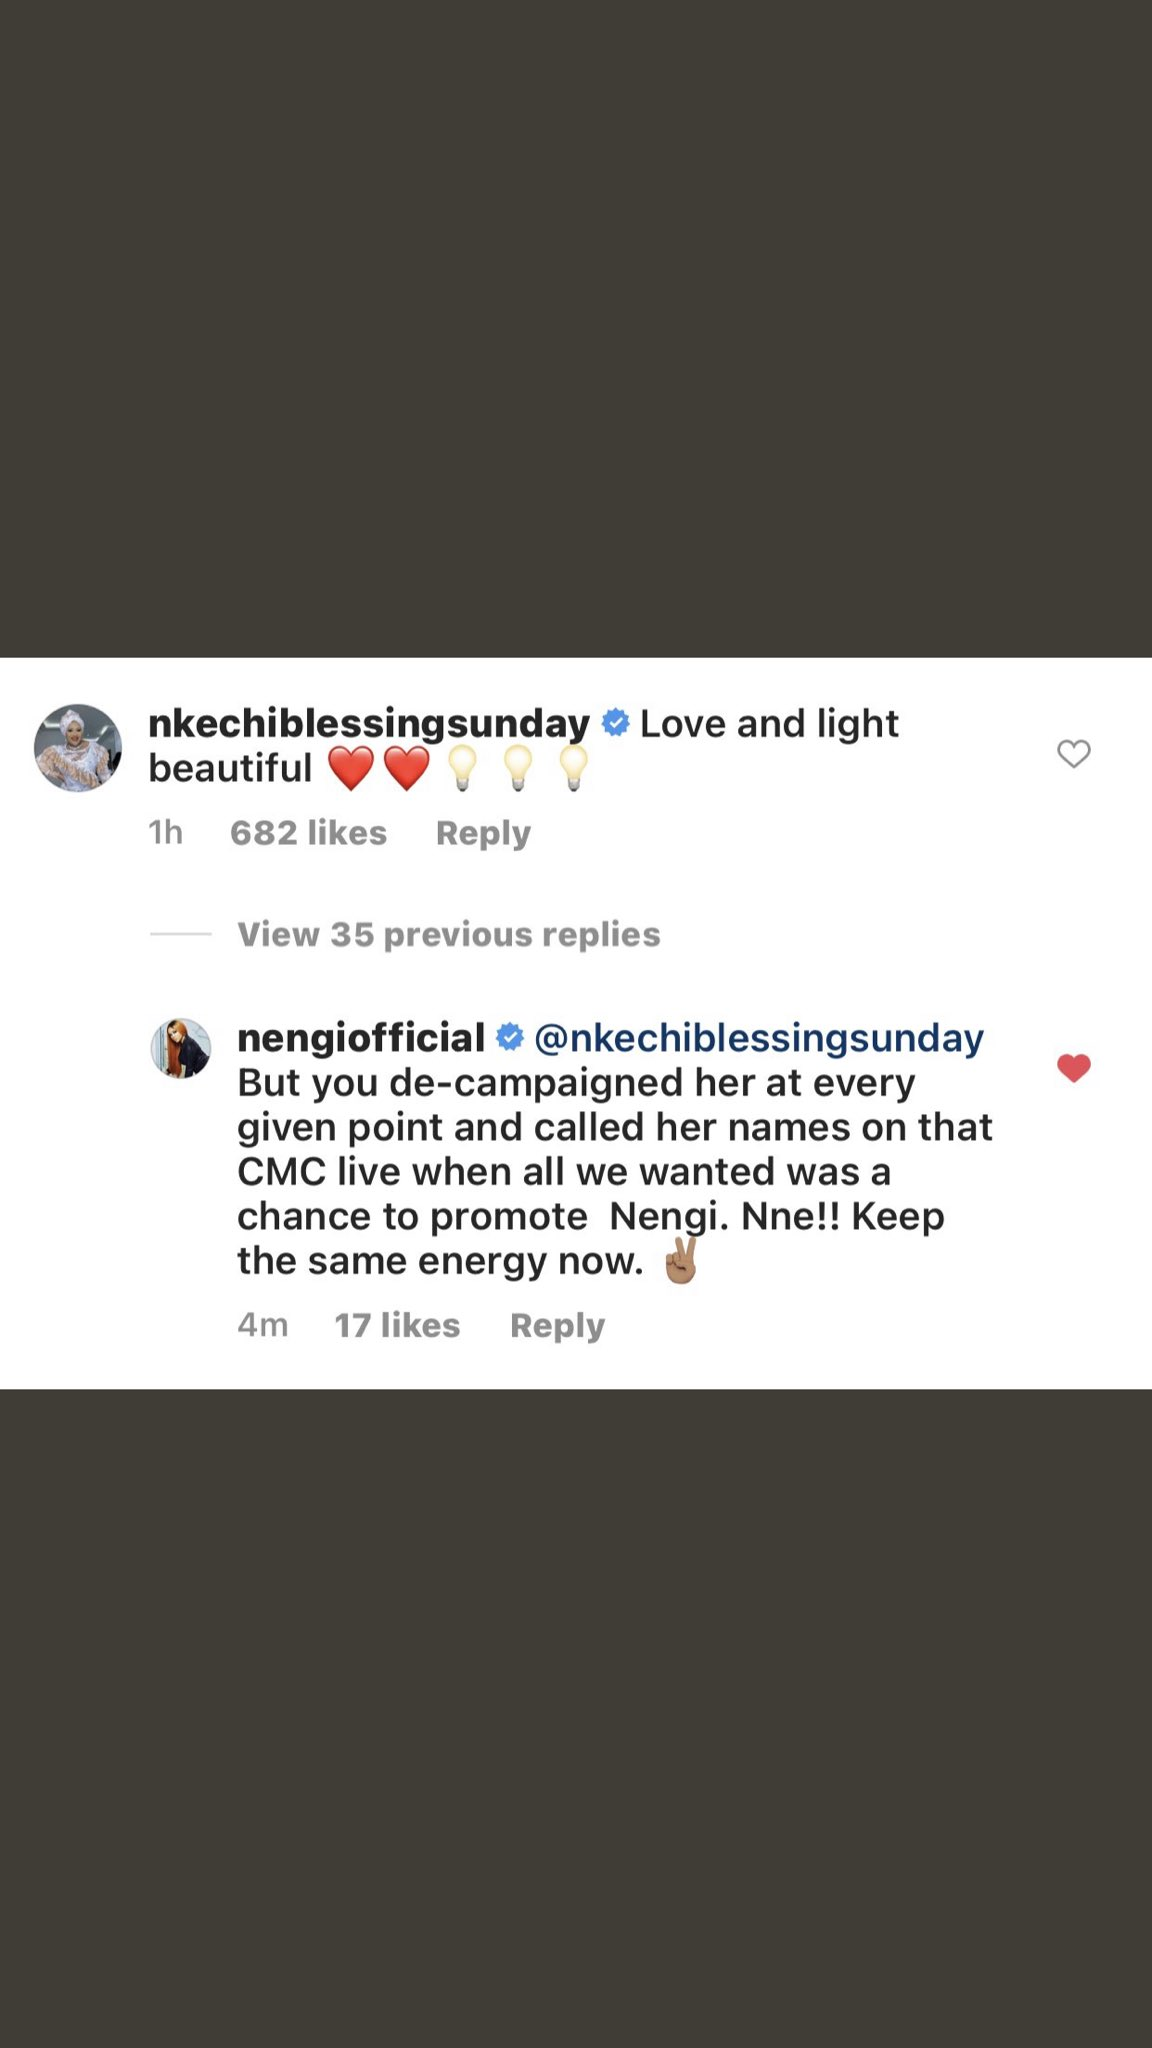 The exchange between the reality star's management and Nkechi Blessing